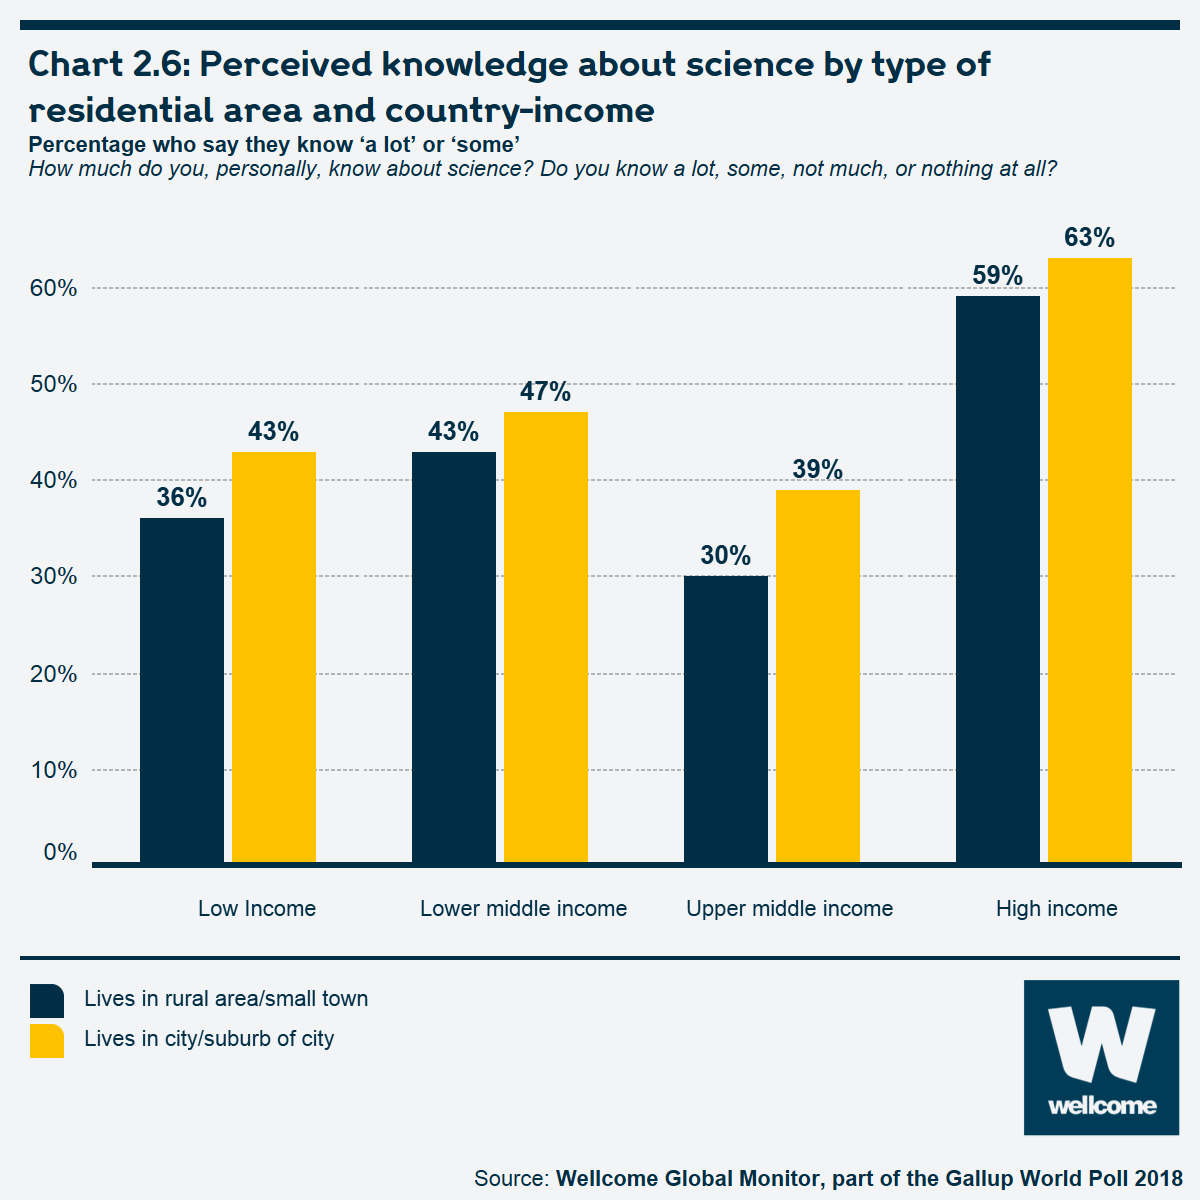 Chart 2.6: Perceived knowledge about science by type of residential area and country-income